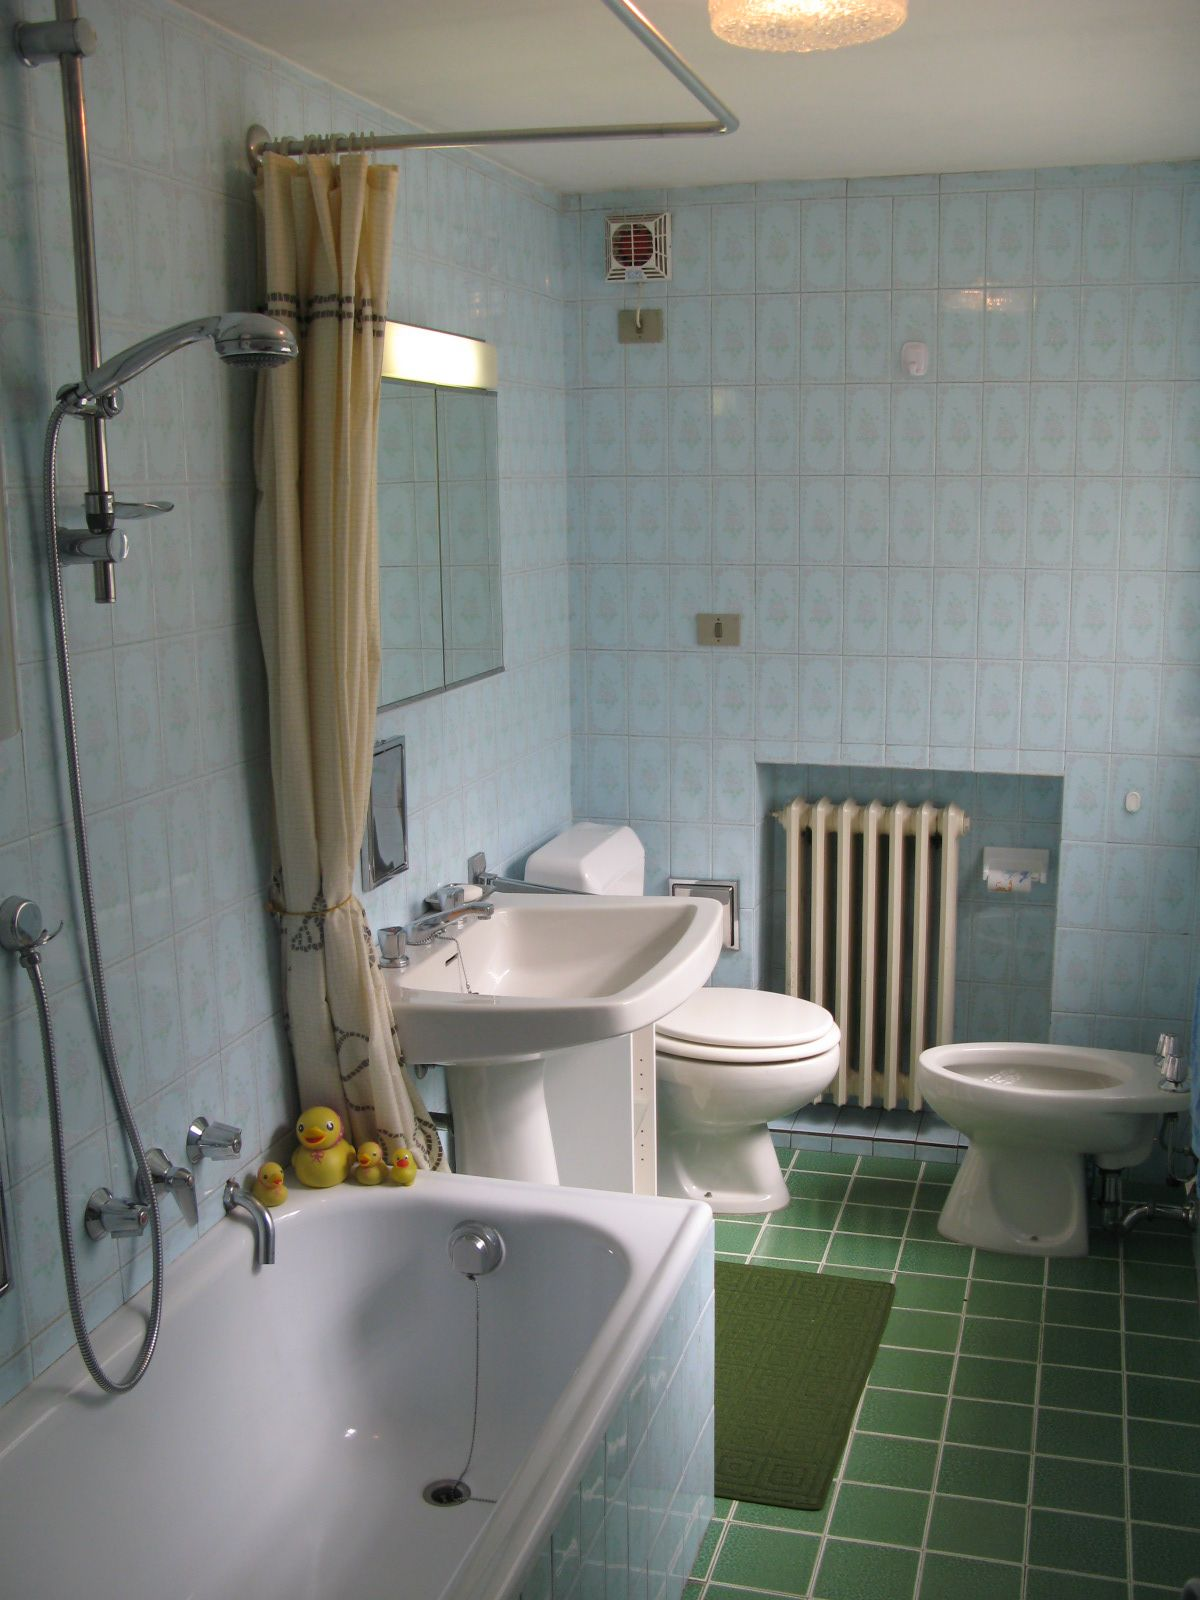 Bathroom of the apartment Meridiana in Cogne